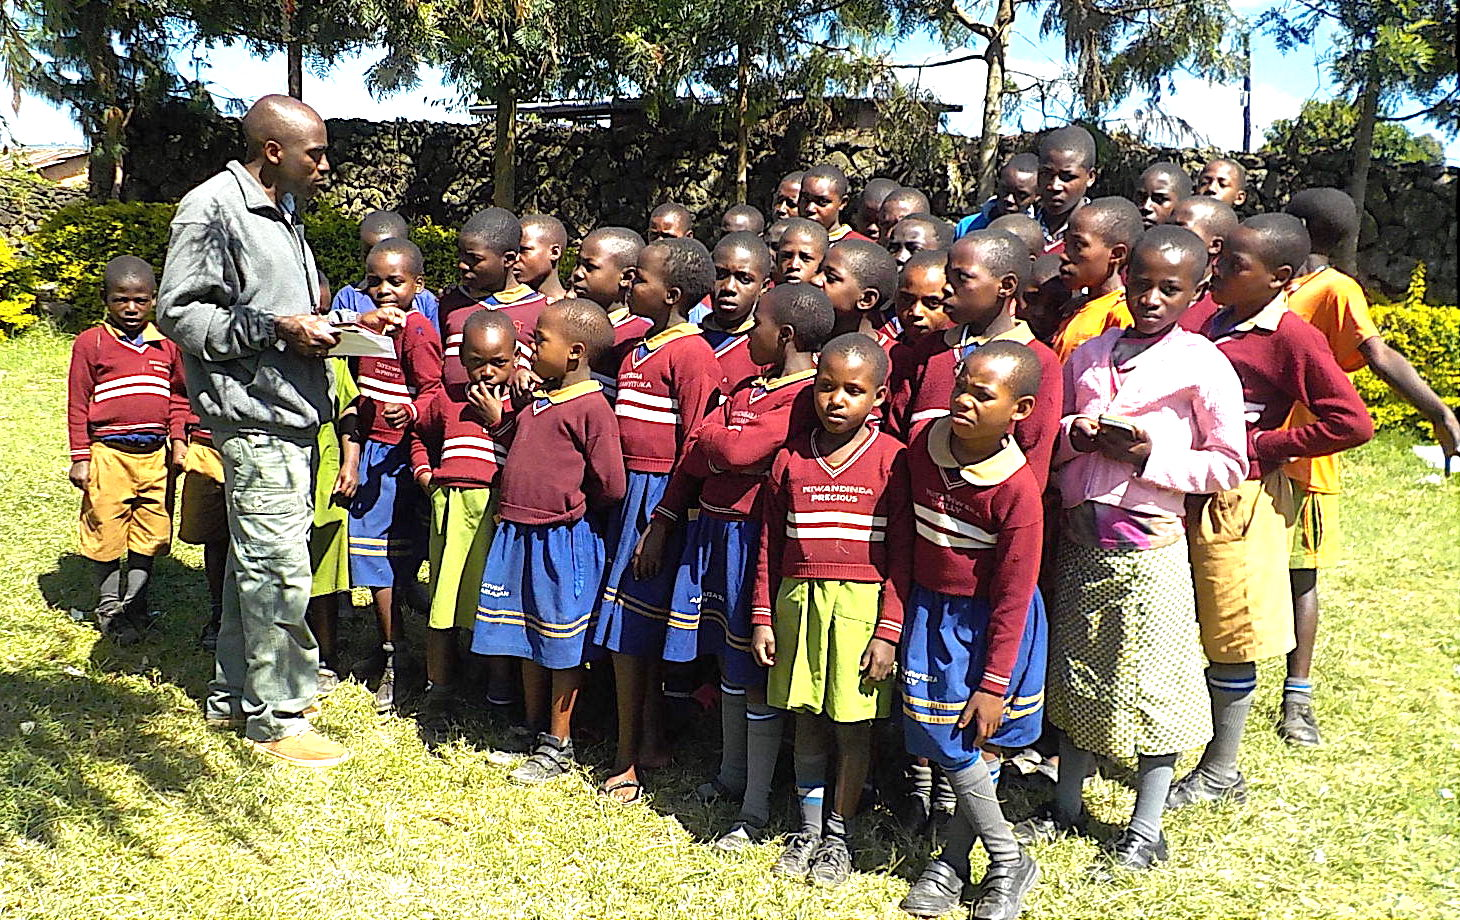 Assessing the health status of the ACT MukoHOPE orphans at school.